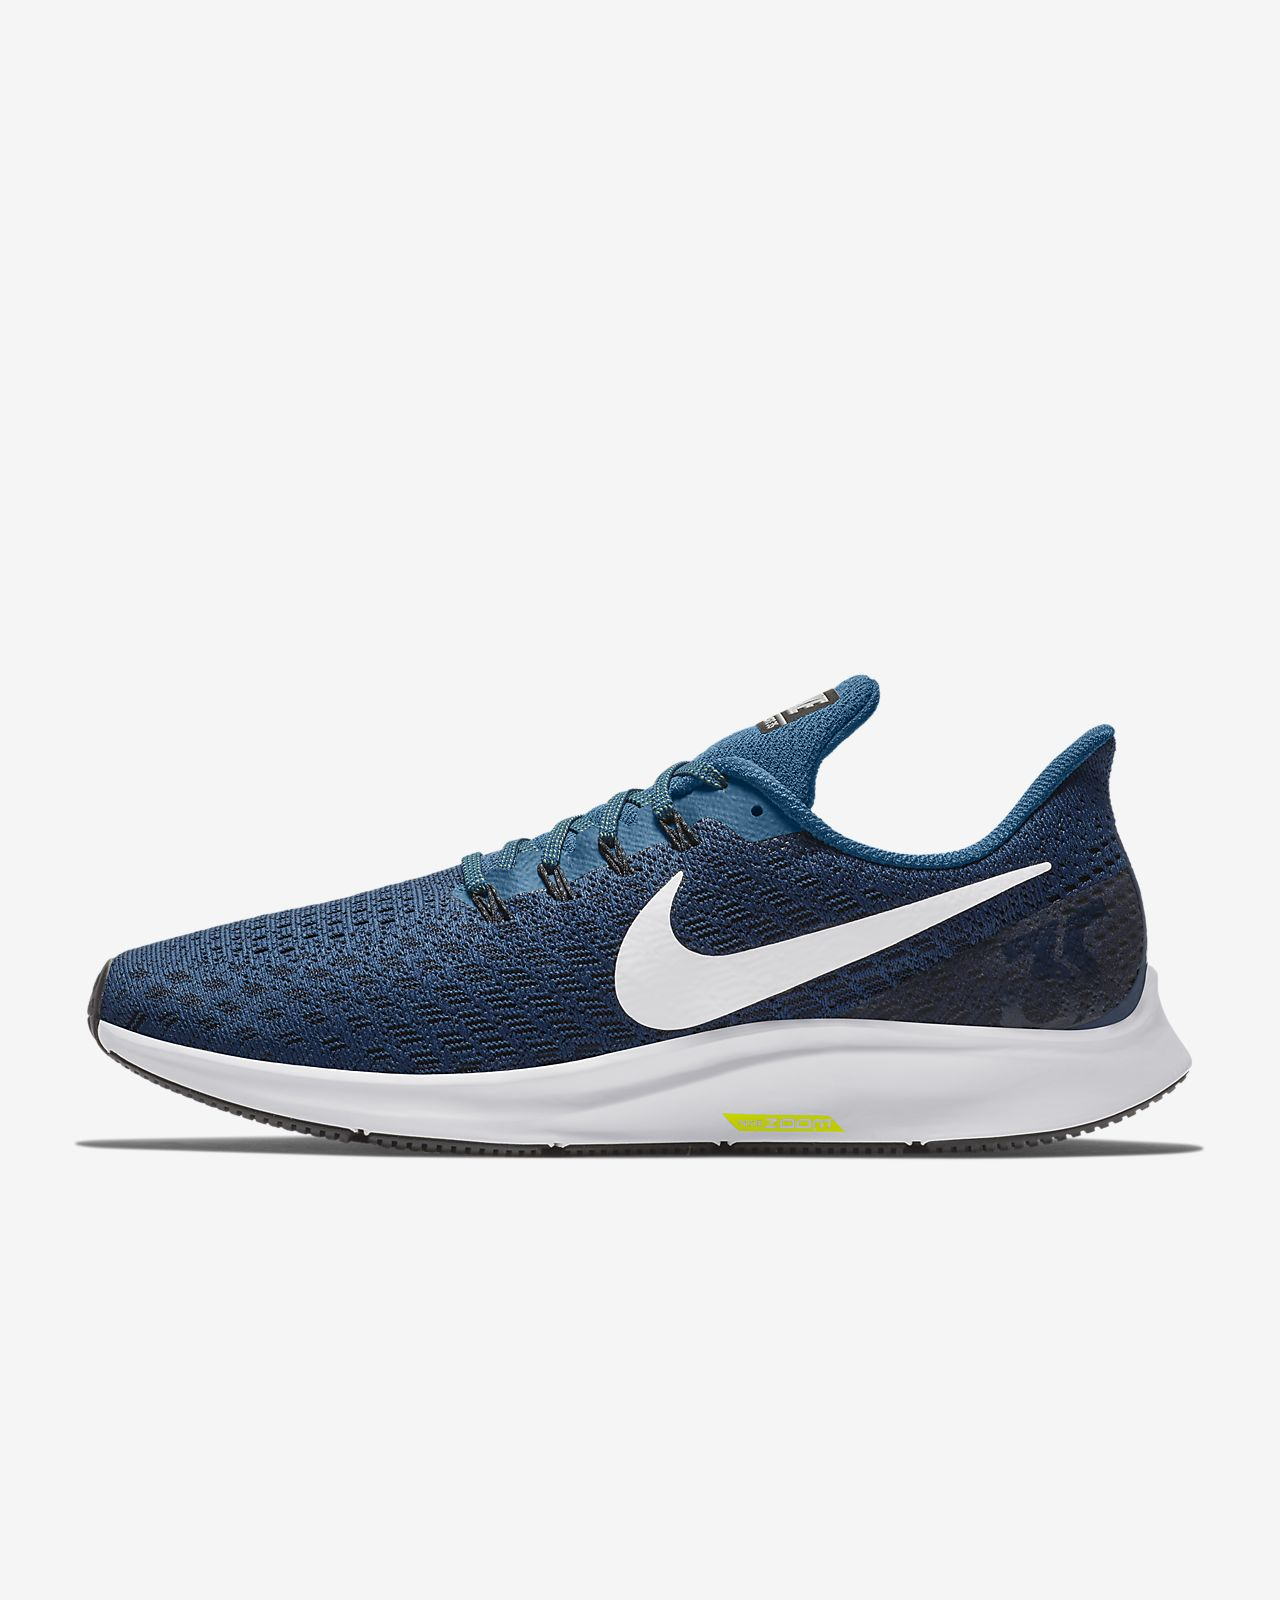 a8f120791295 Nike Air Zoom Pegasus 35 Men s Running Shoe. Nike.com AU